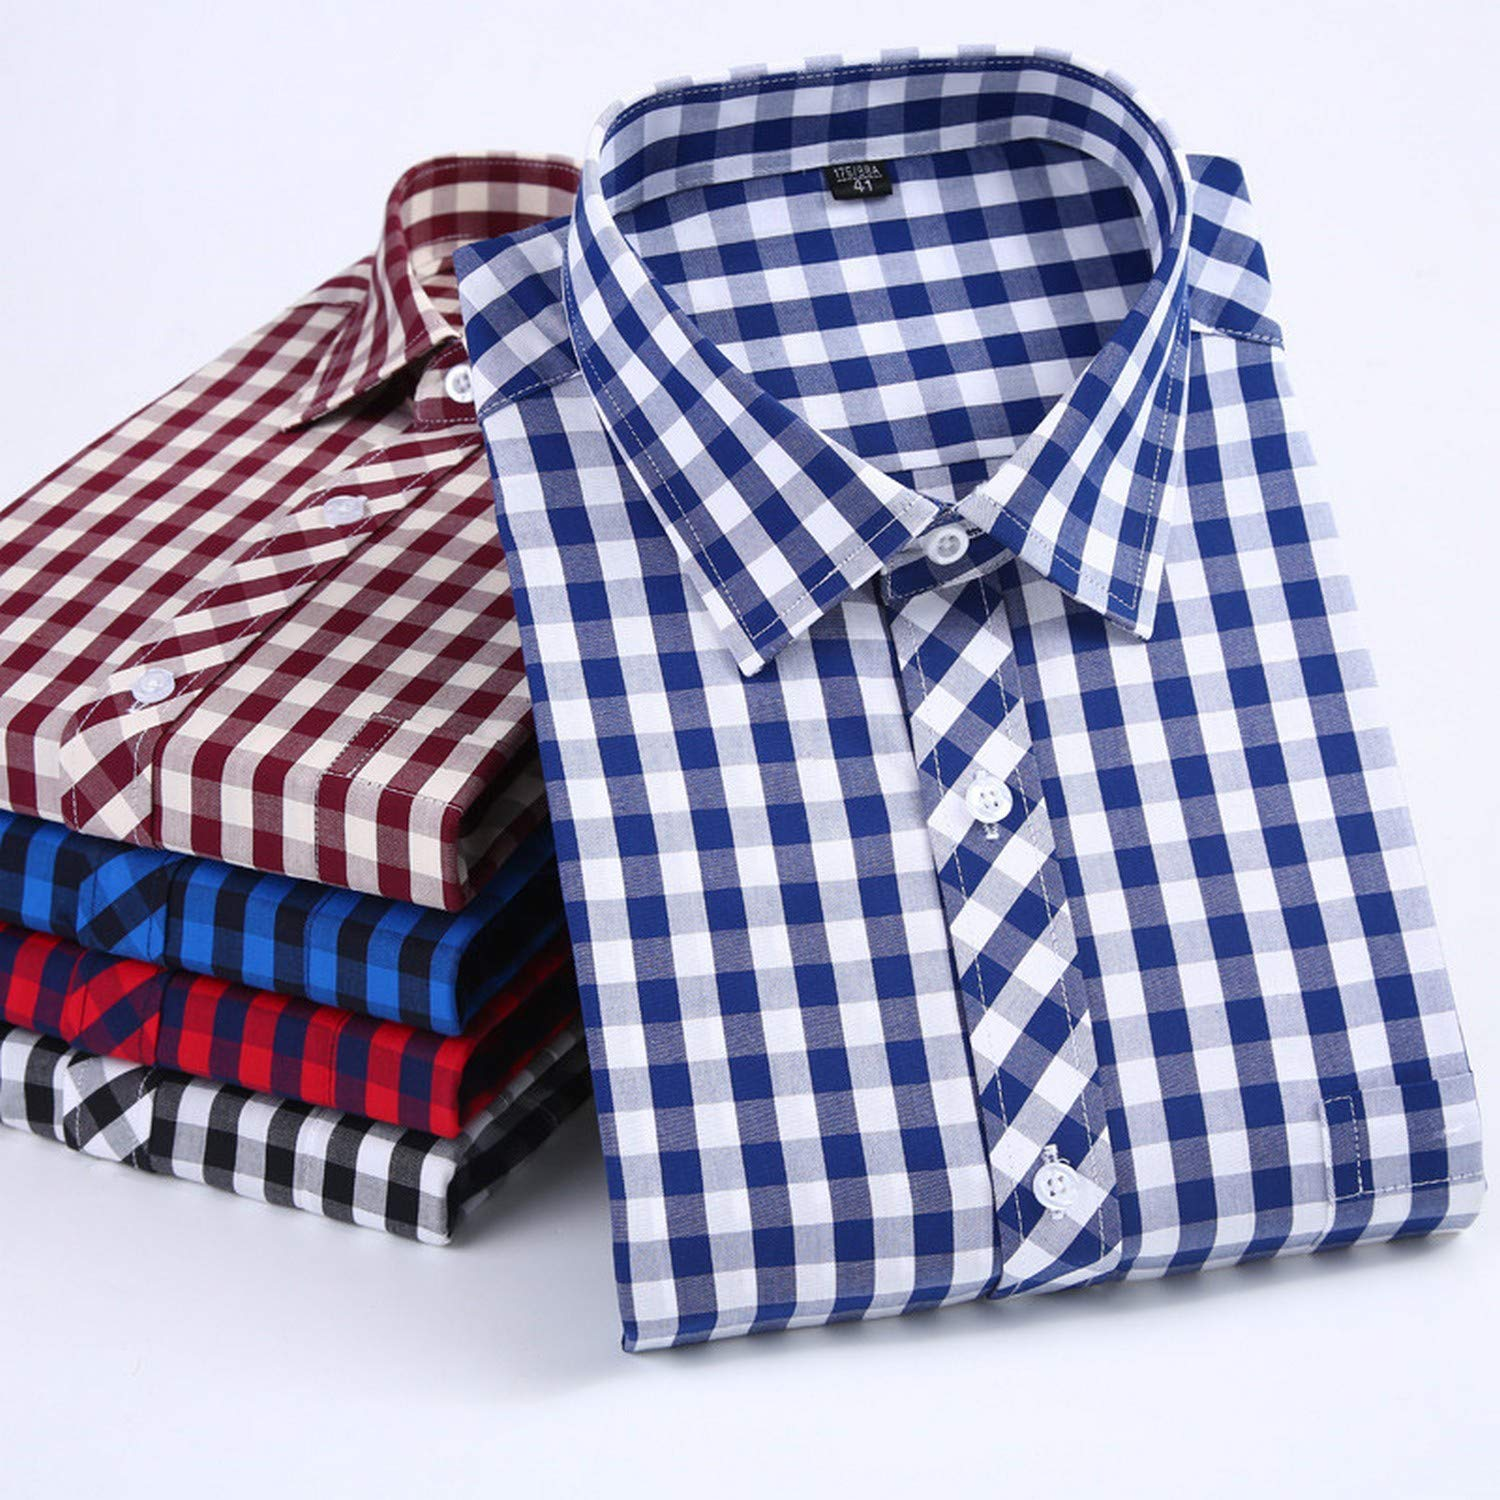 Pure Cotton no Fade no Shrink Regular fit Long Sleeve Classical Male Plaid Casual Shirts